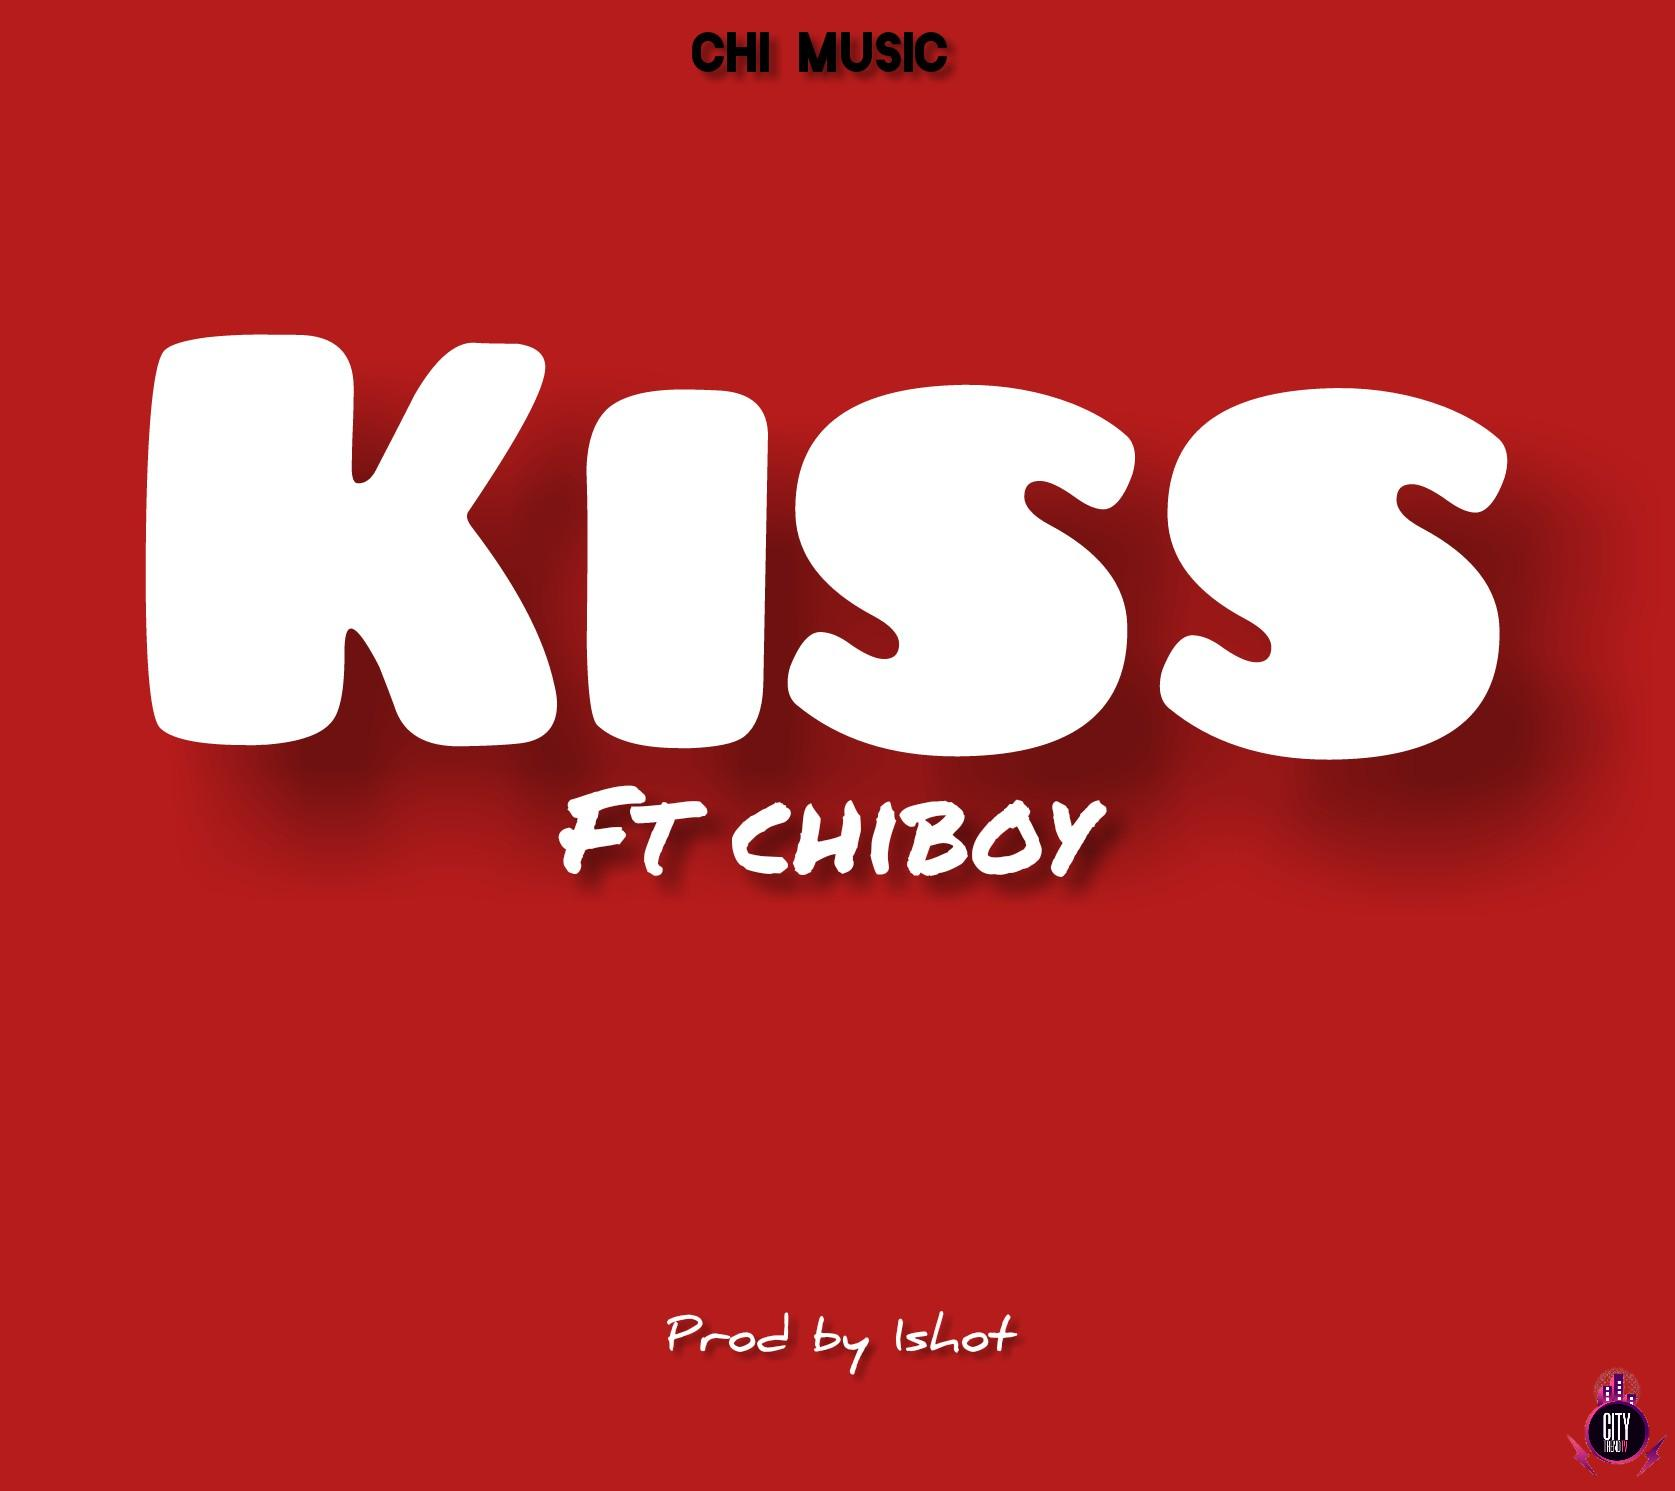 ChiBoy – Kiss Prod. 1shot